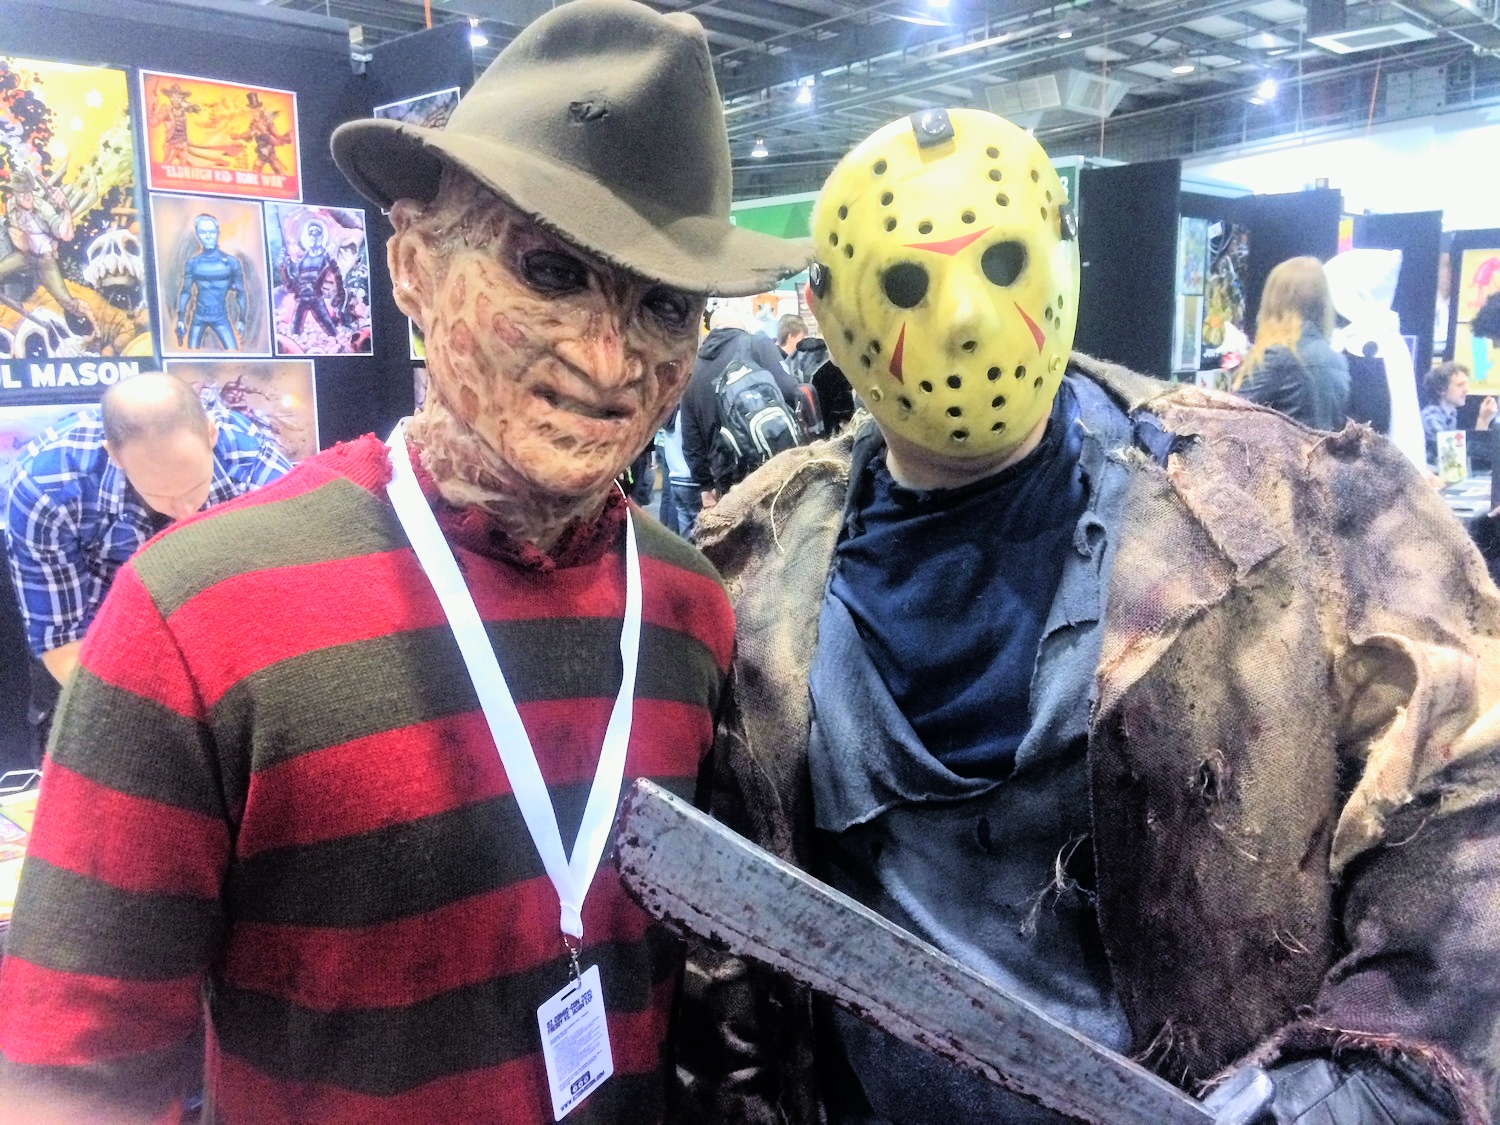 Spitting image of the real Freddy vs Jason, scary stuff.